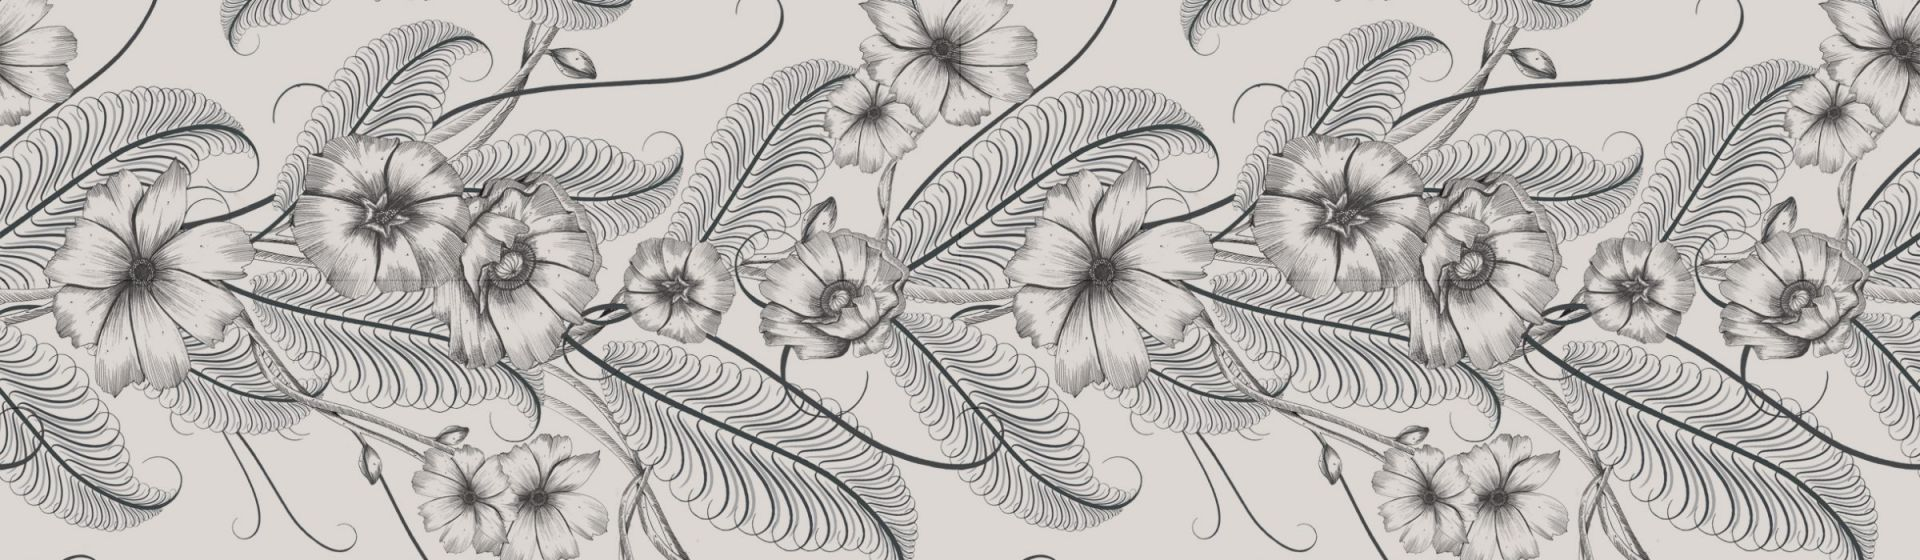 Flowery-Feather-Flourish-High-Res-e1475498293733-2400x700.jpg